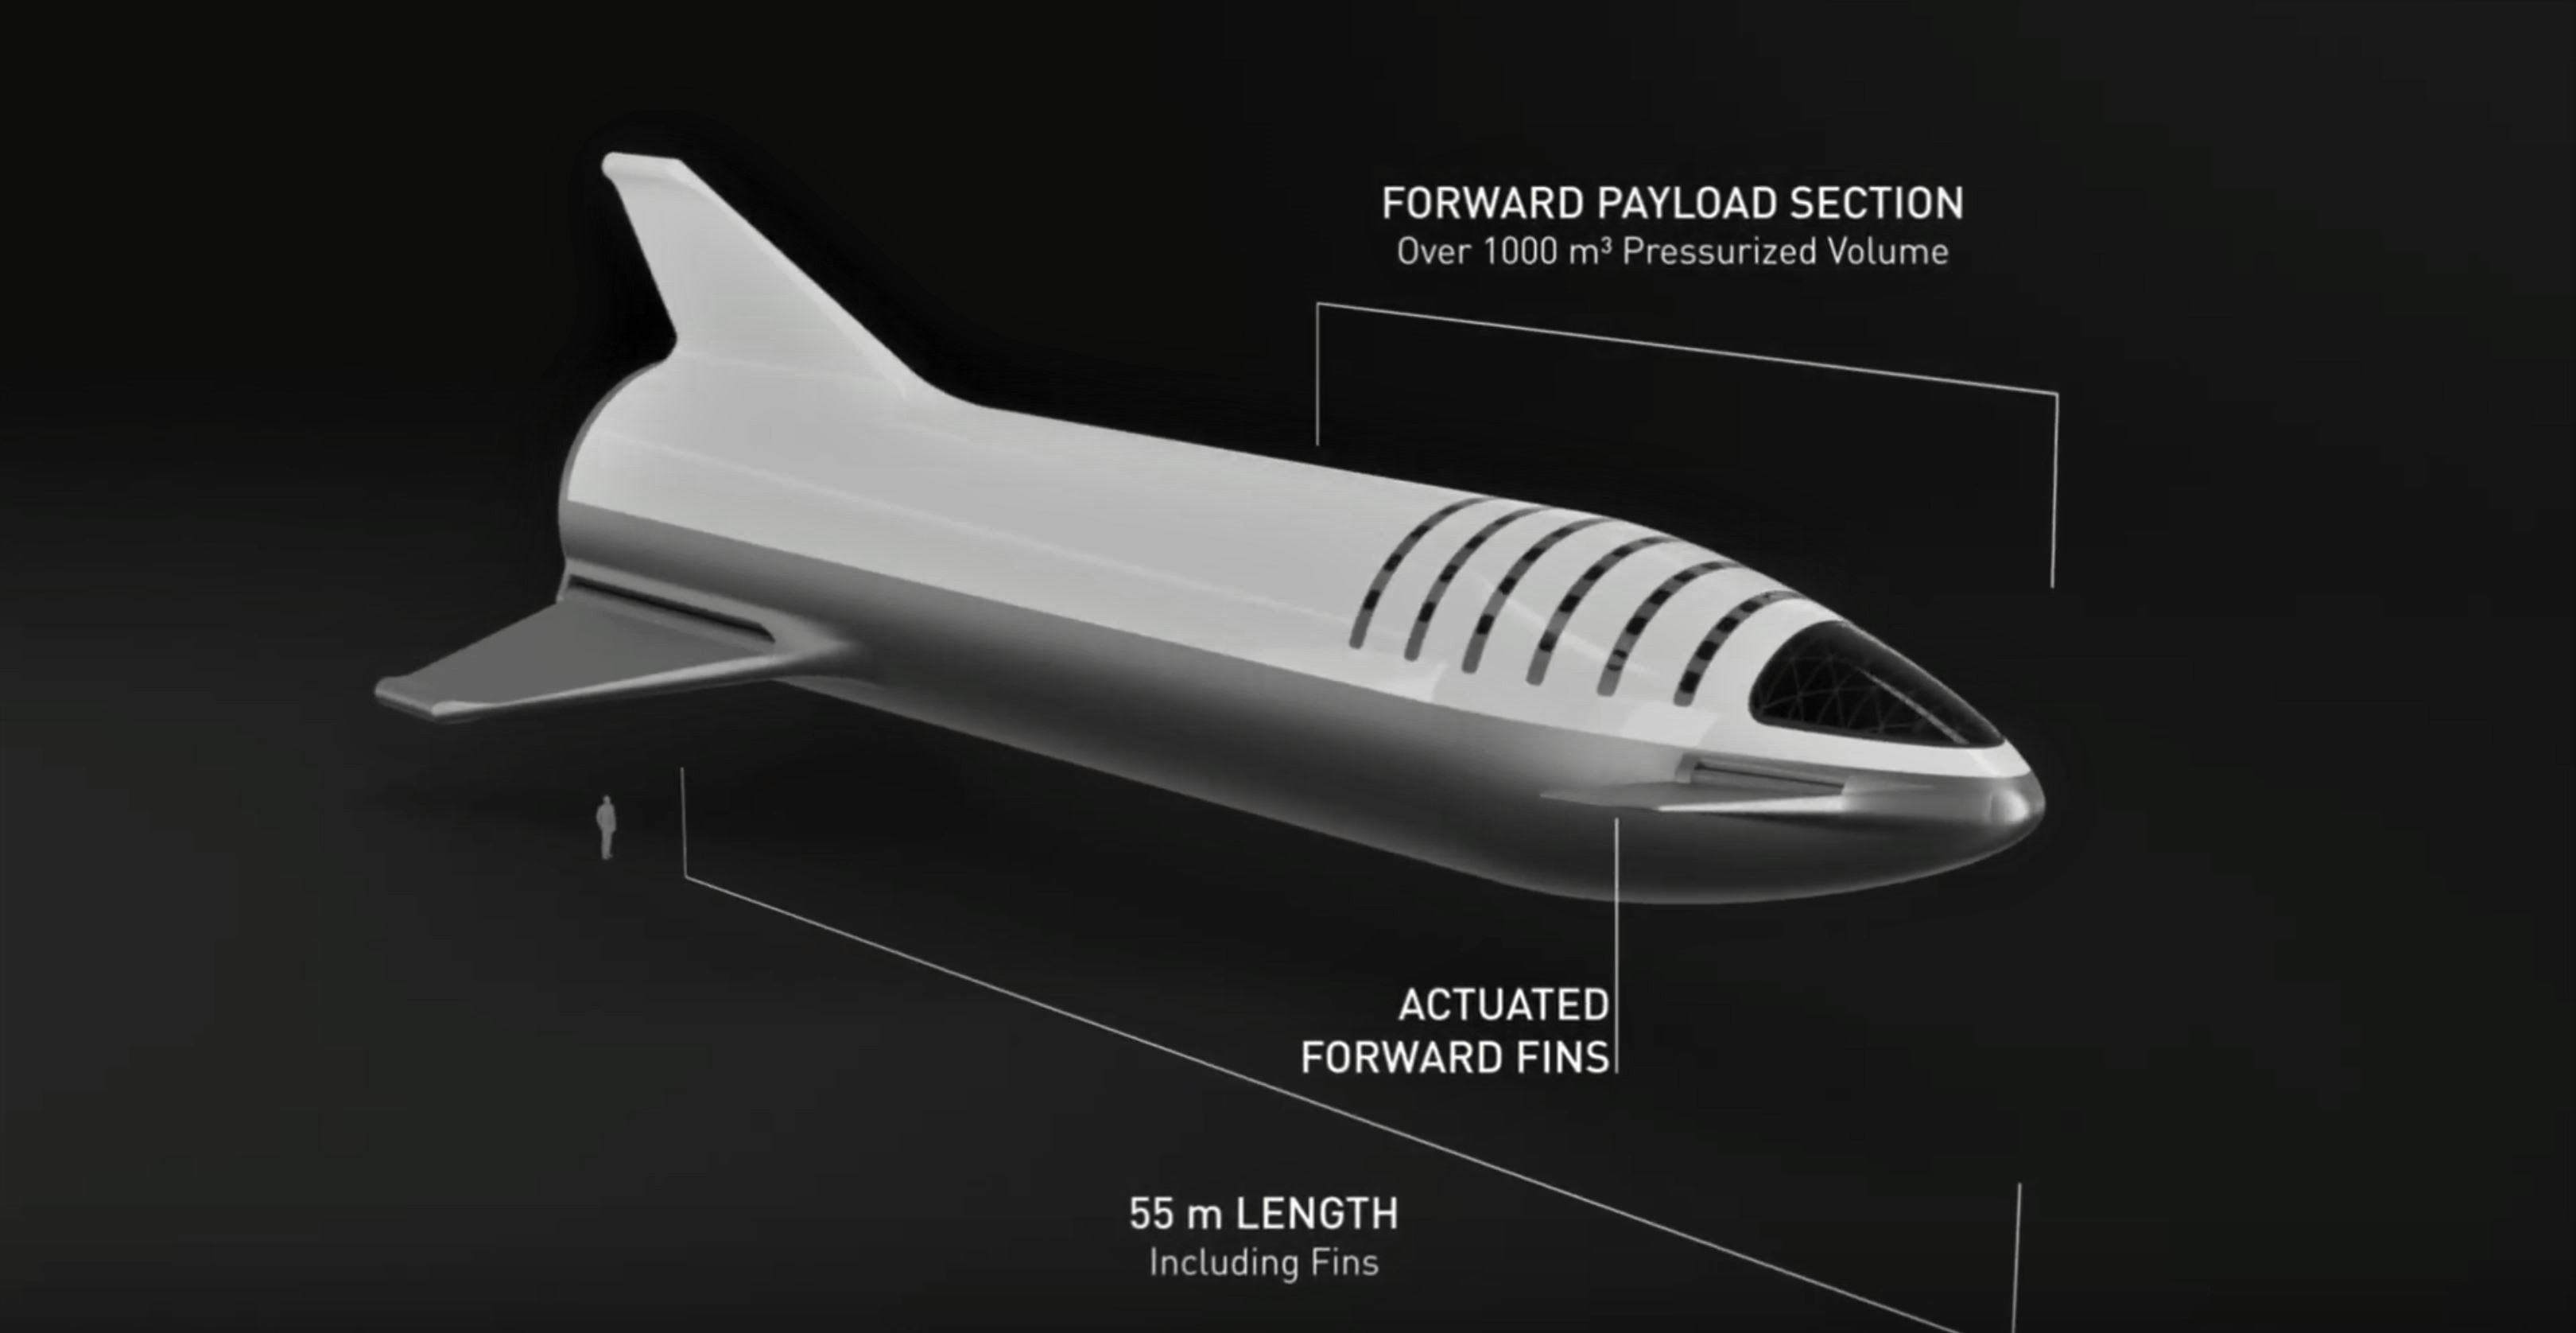 BFR 2018 event slides (SpaceX) 3